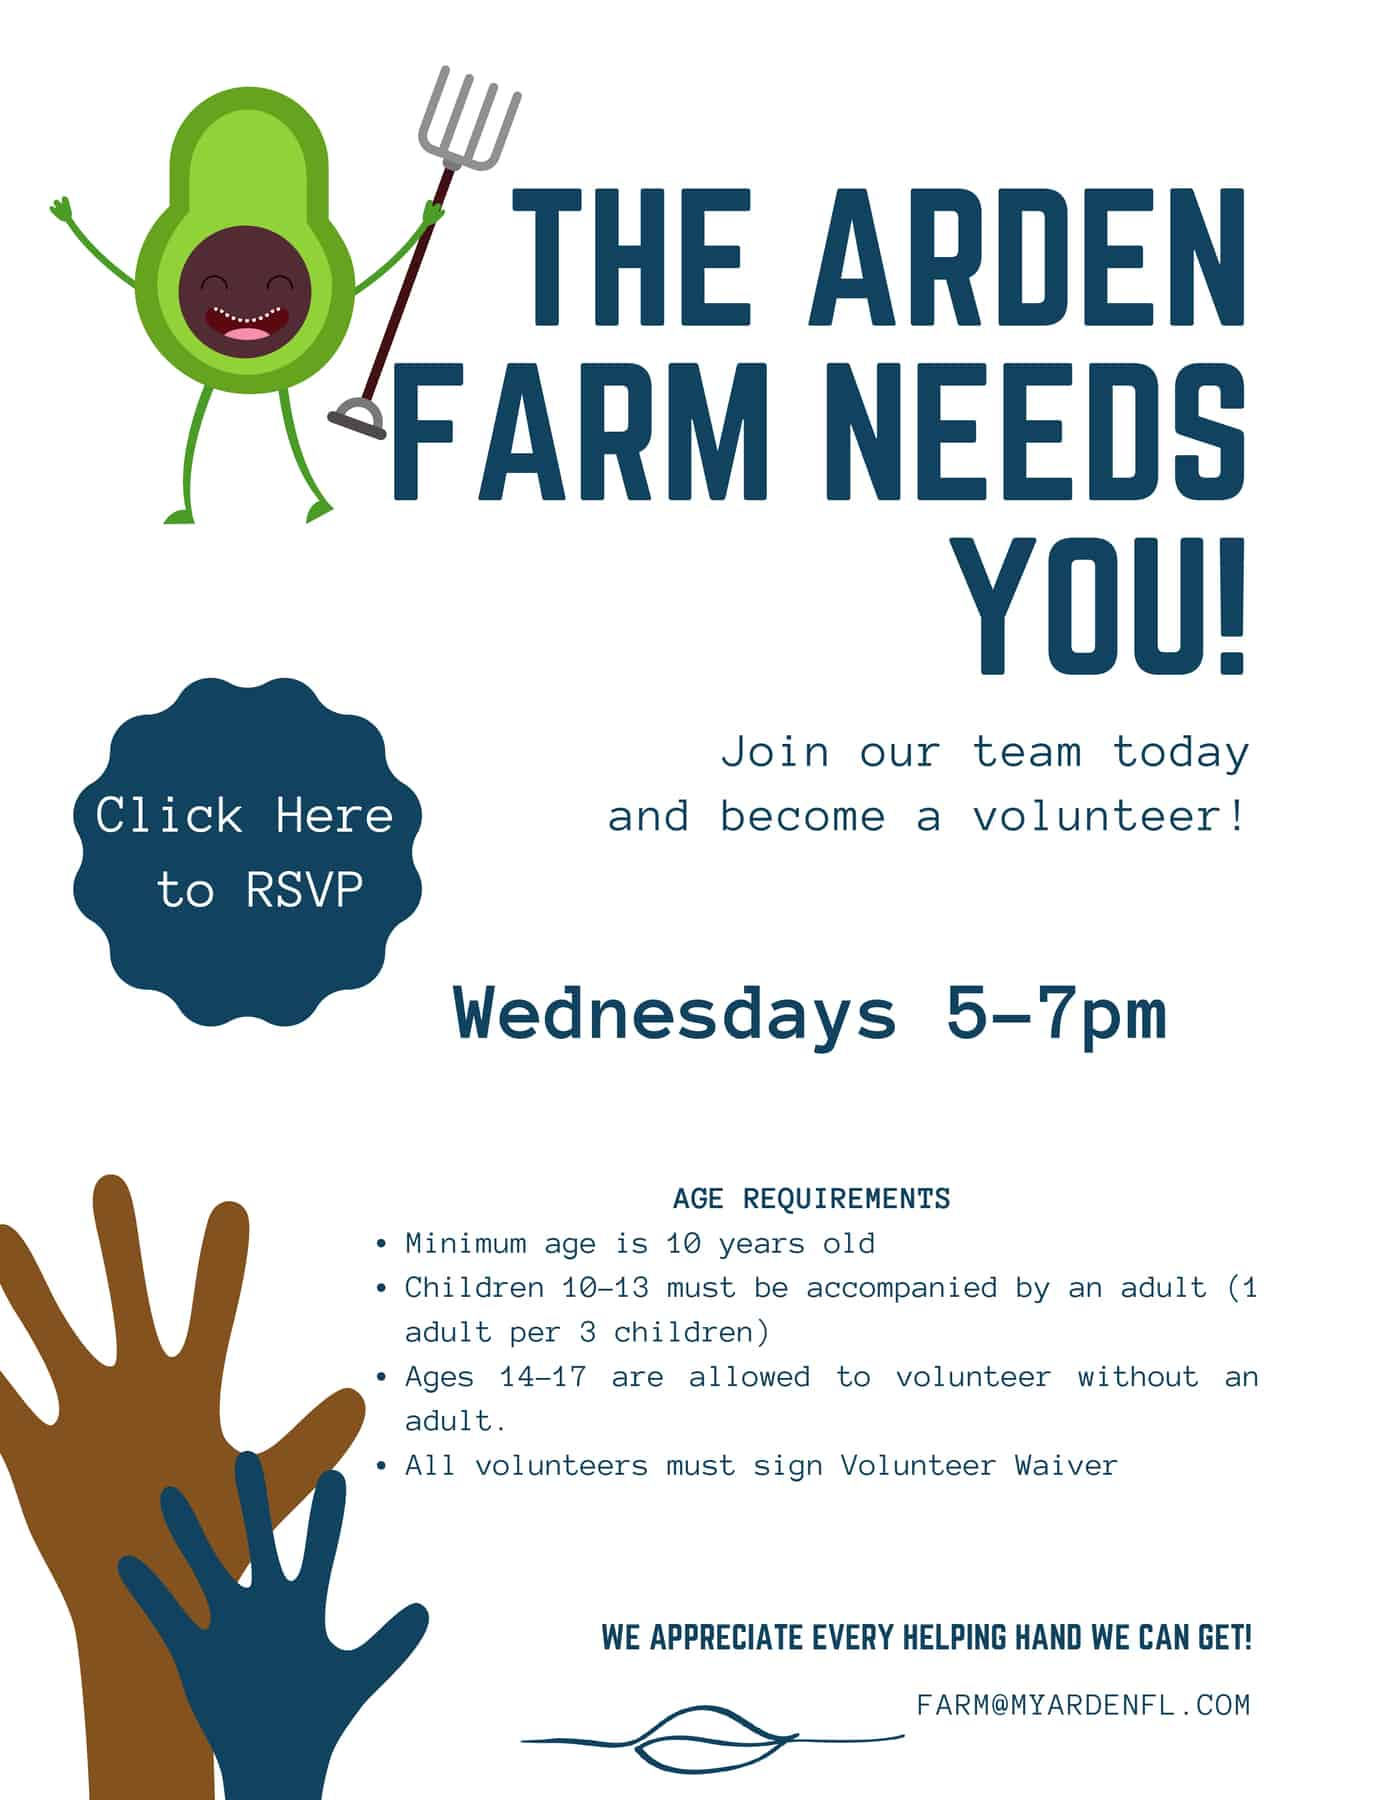 The Arden Farm Needs You